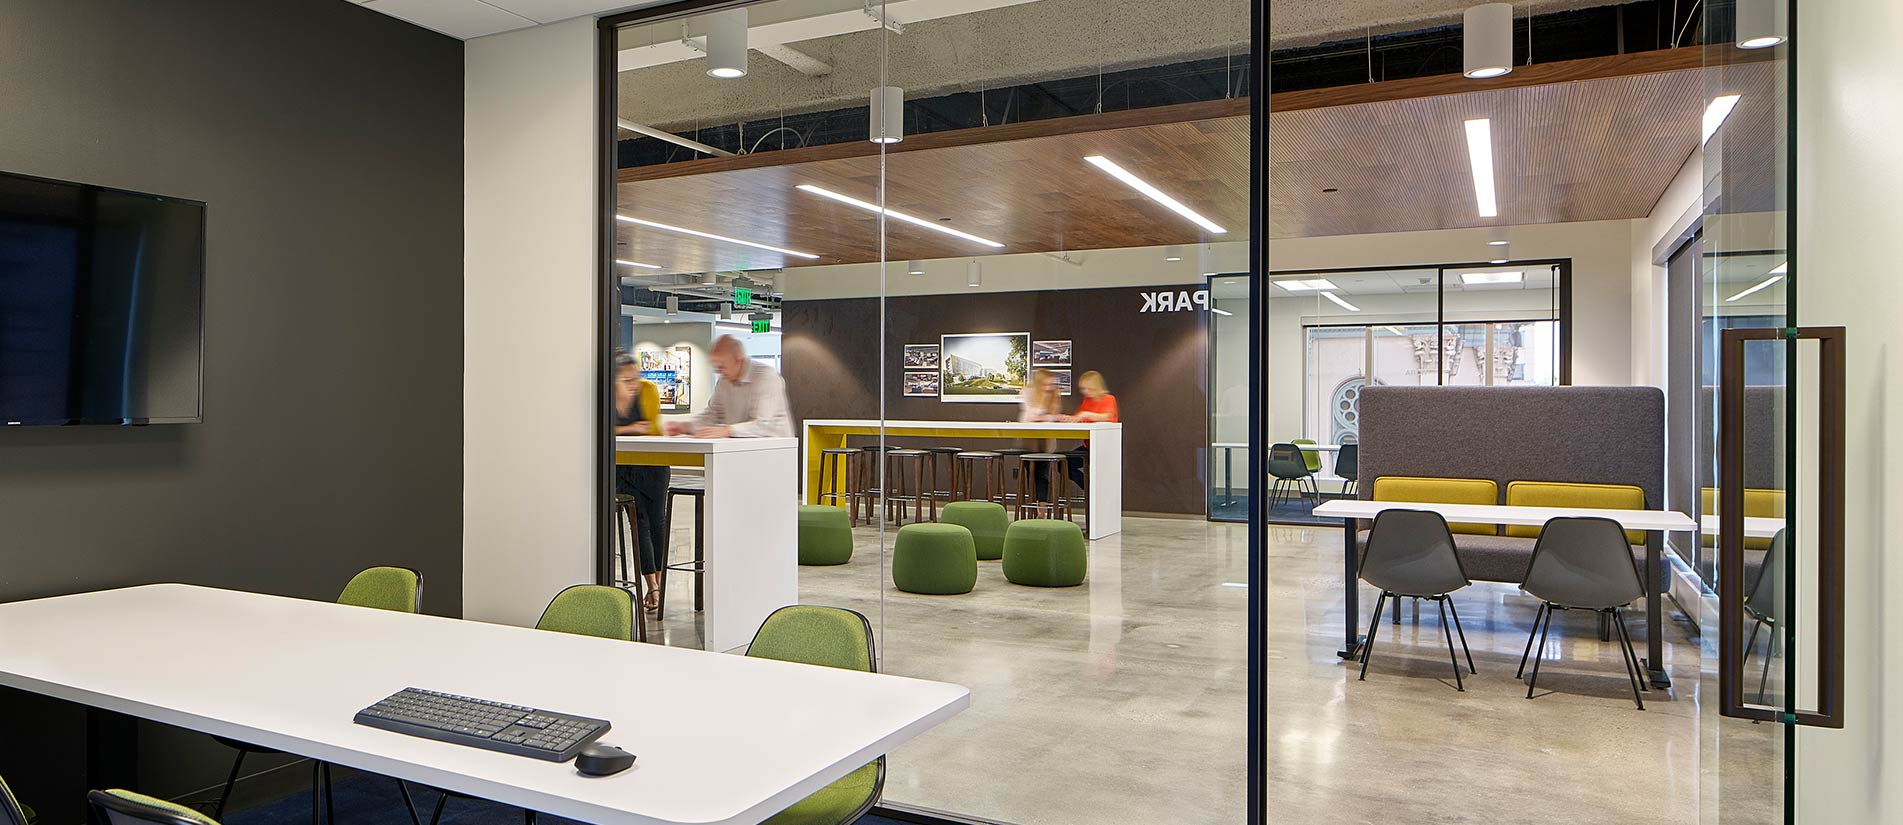 Multiple workspaces in an open floor plan are divided by One-LP movable partitions and walls.